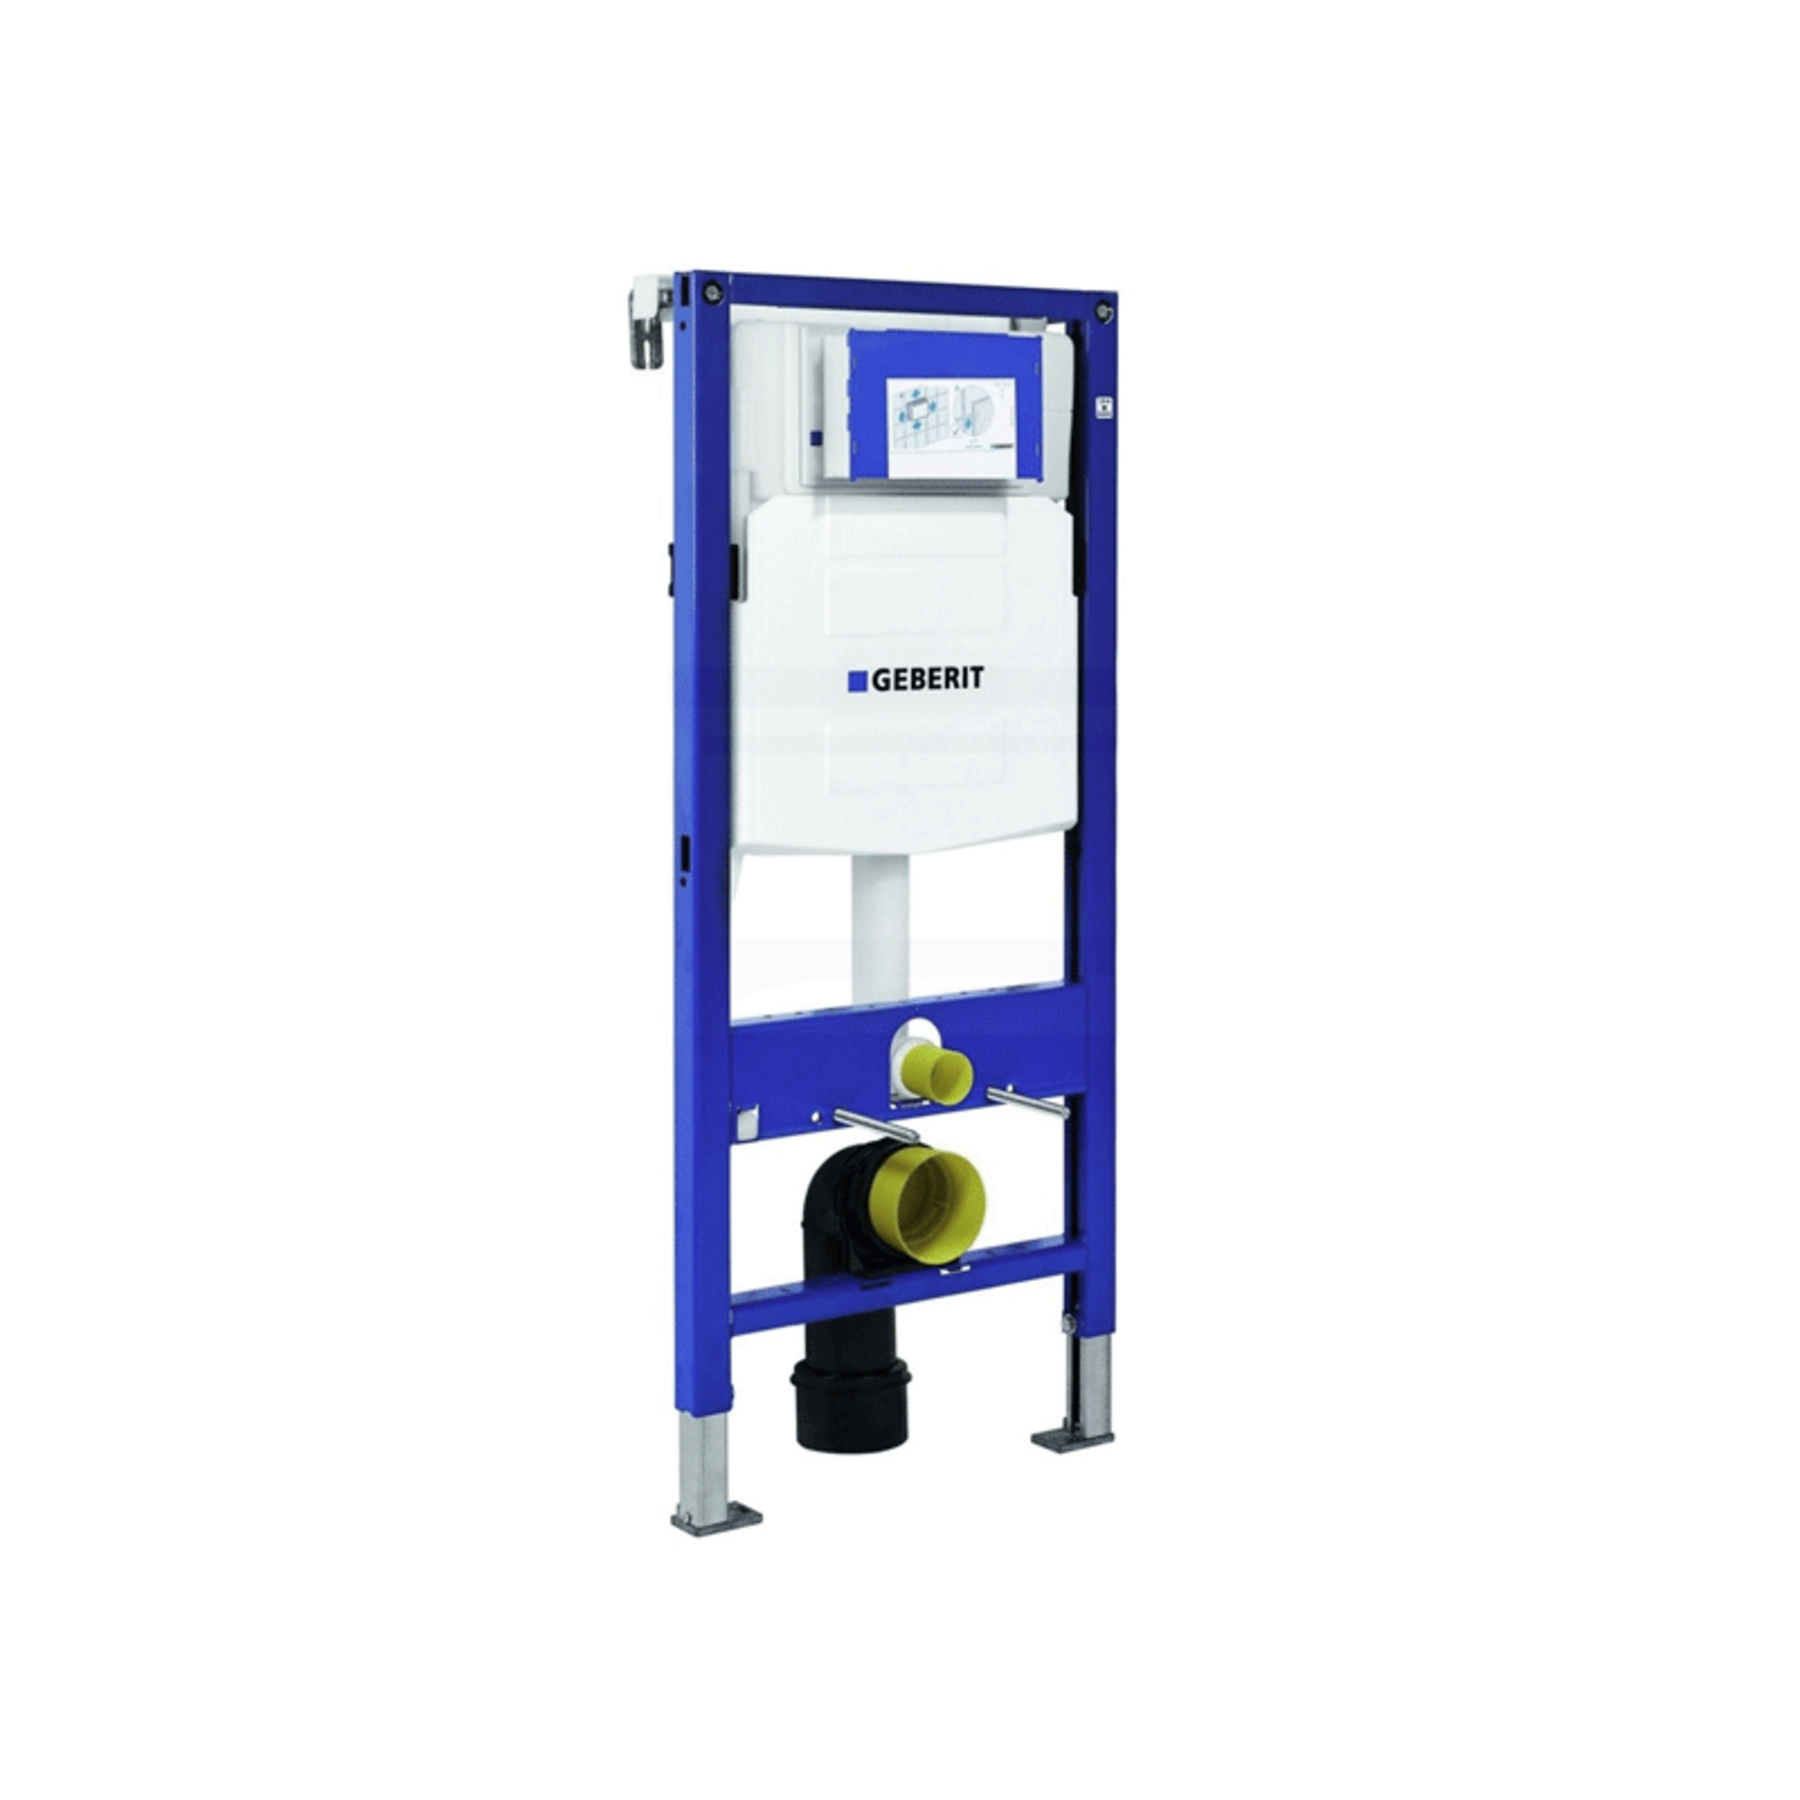 Geberit Duofix WC element met reservoir UP320 112cm hoog